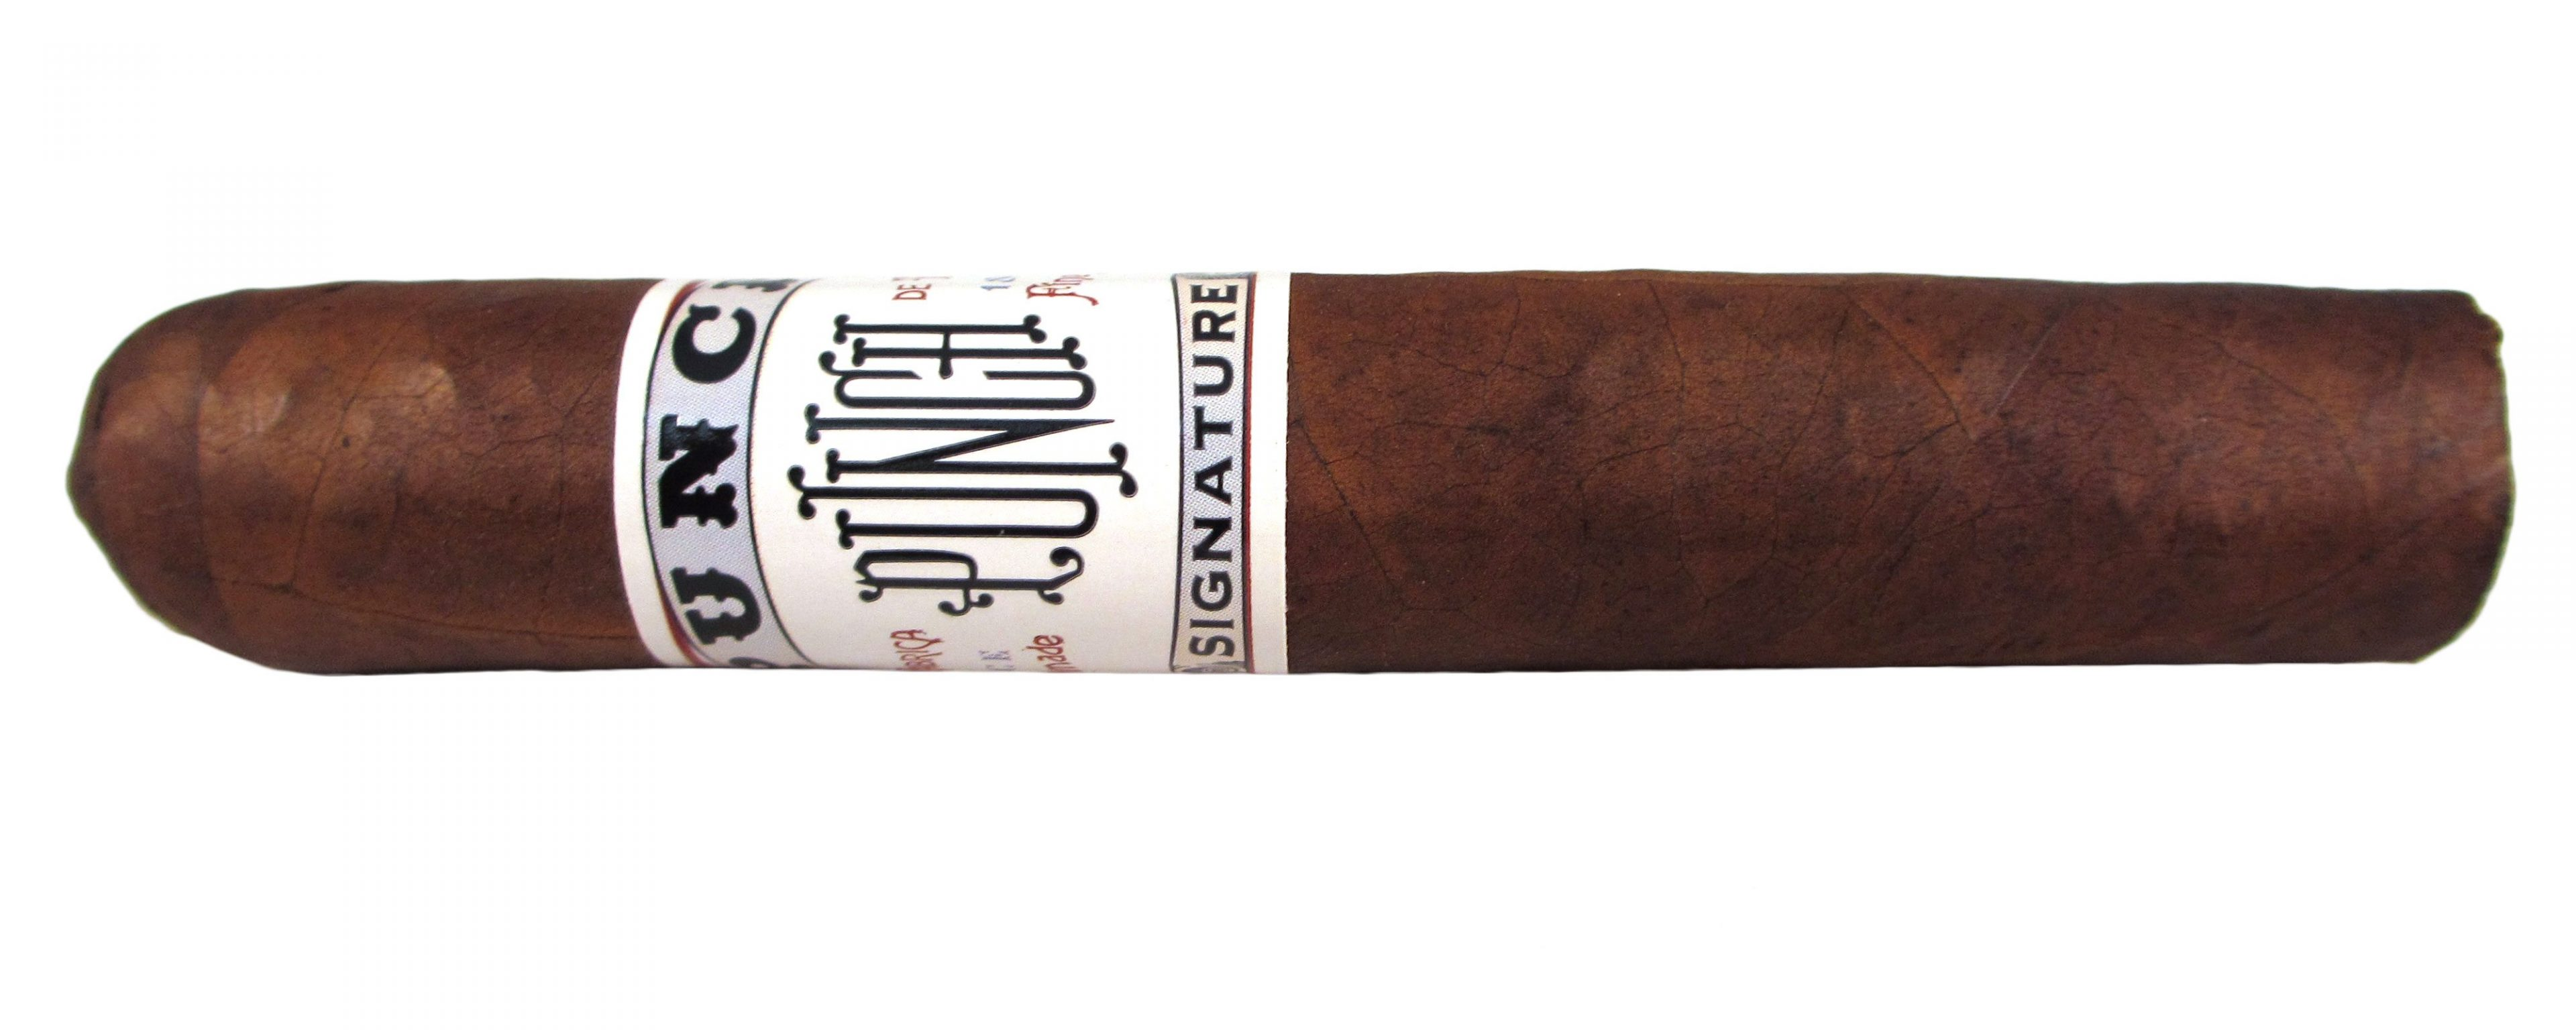 Blind Cigar Review: Punch   Signature Robusto